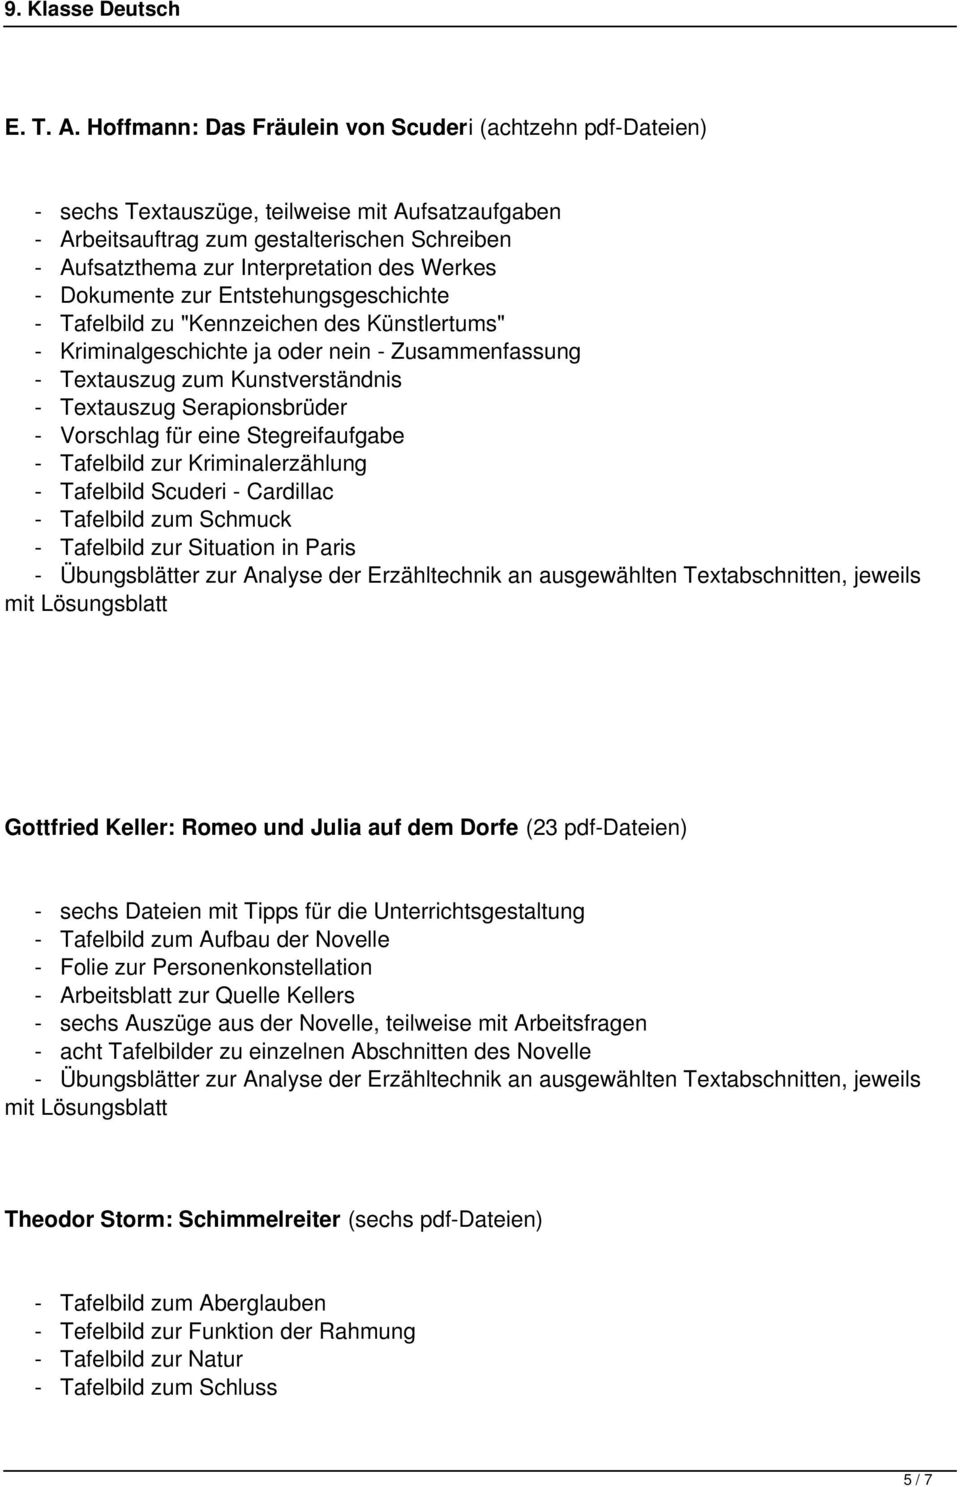 interpretation aufbau pdf